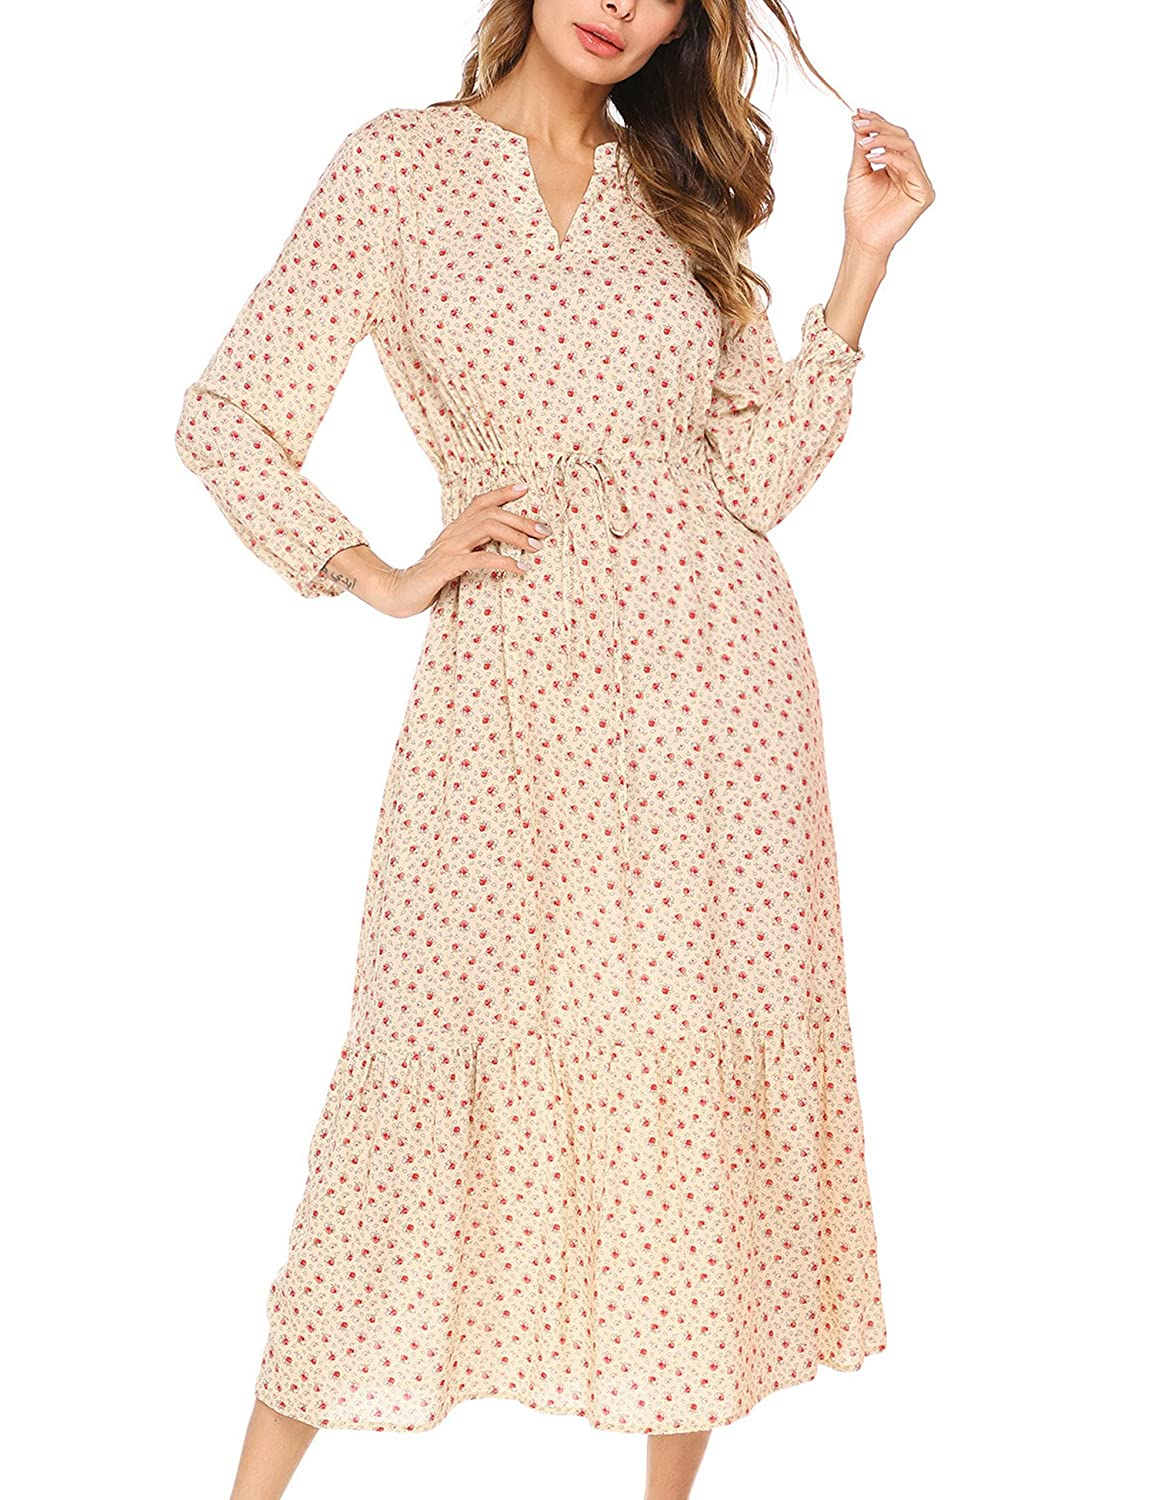 Easy DIY Edwardian Titanic Costumes 1910-1915 BEAUTYTALK Womens Long Sleeve Spring Floral Casual Chiffon Gown Boho Long Maxi Dress with Pocket $37.29 AT vintagedancer.com